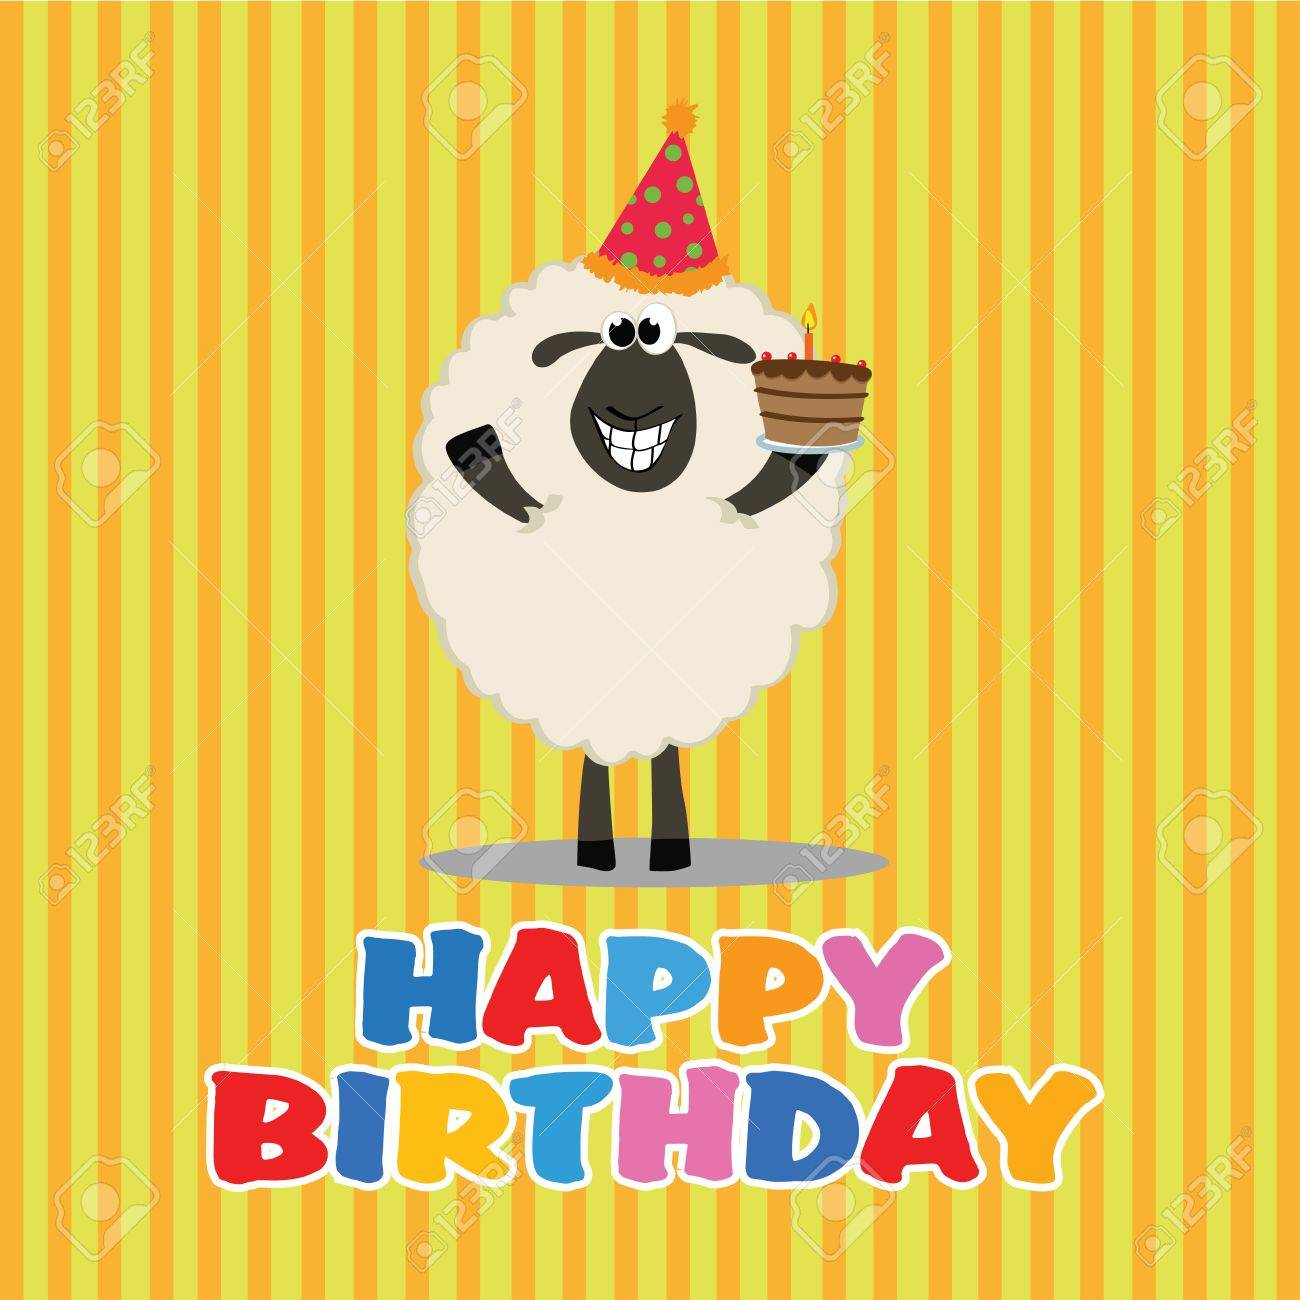 Sheep With A Cake Celebrating A Happy Birthday Party Royalty Free